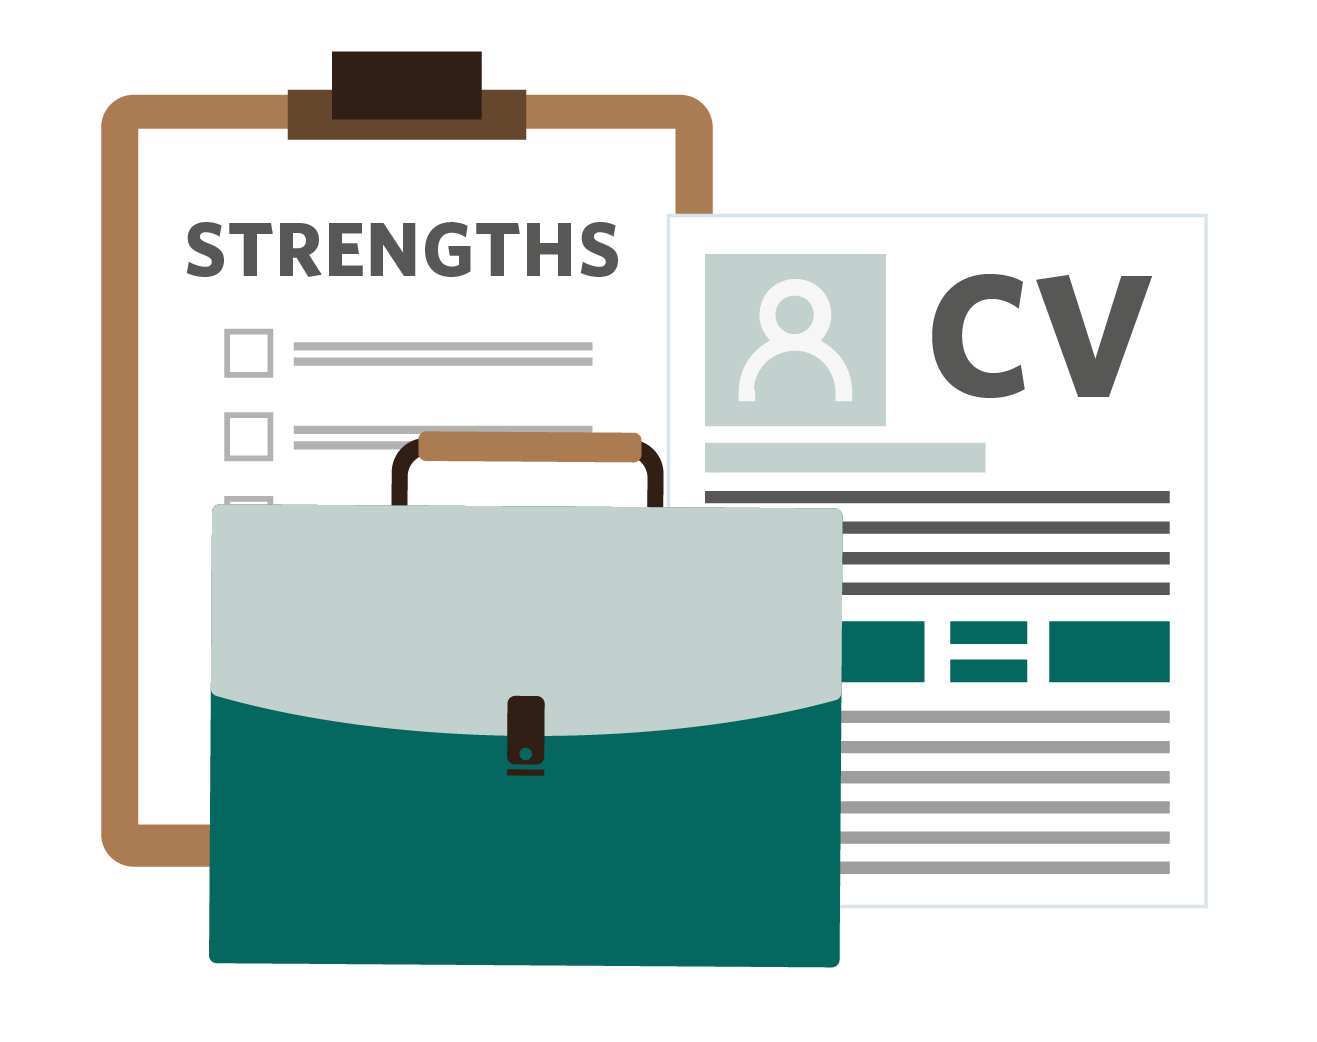 OPTIMISE YOUR JOB SEARCH STRATEGY